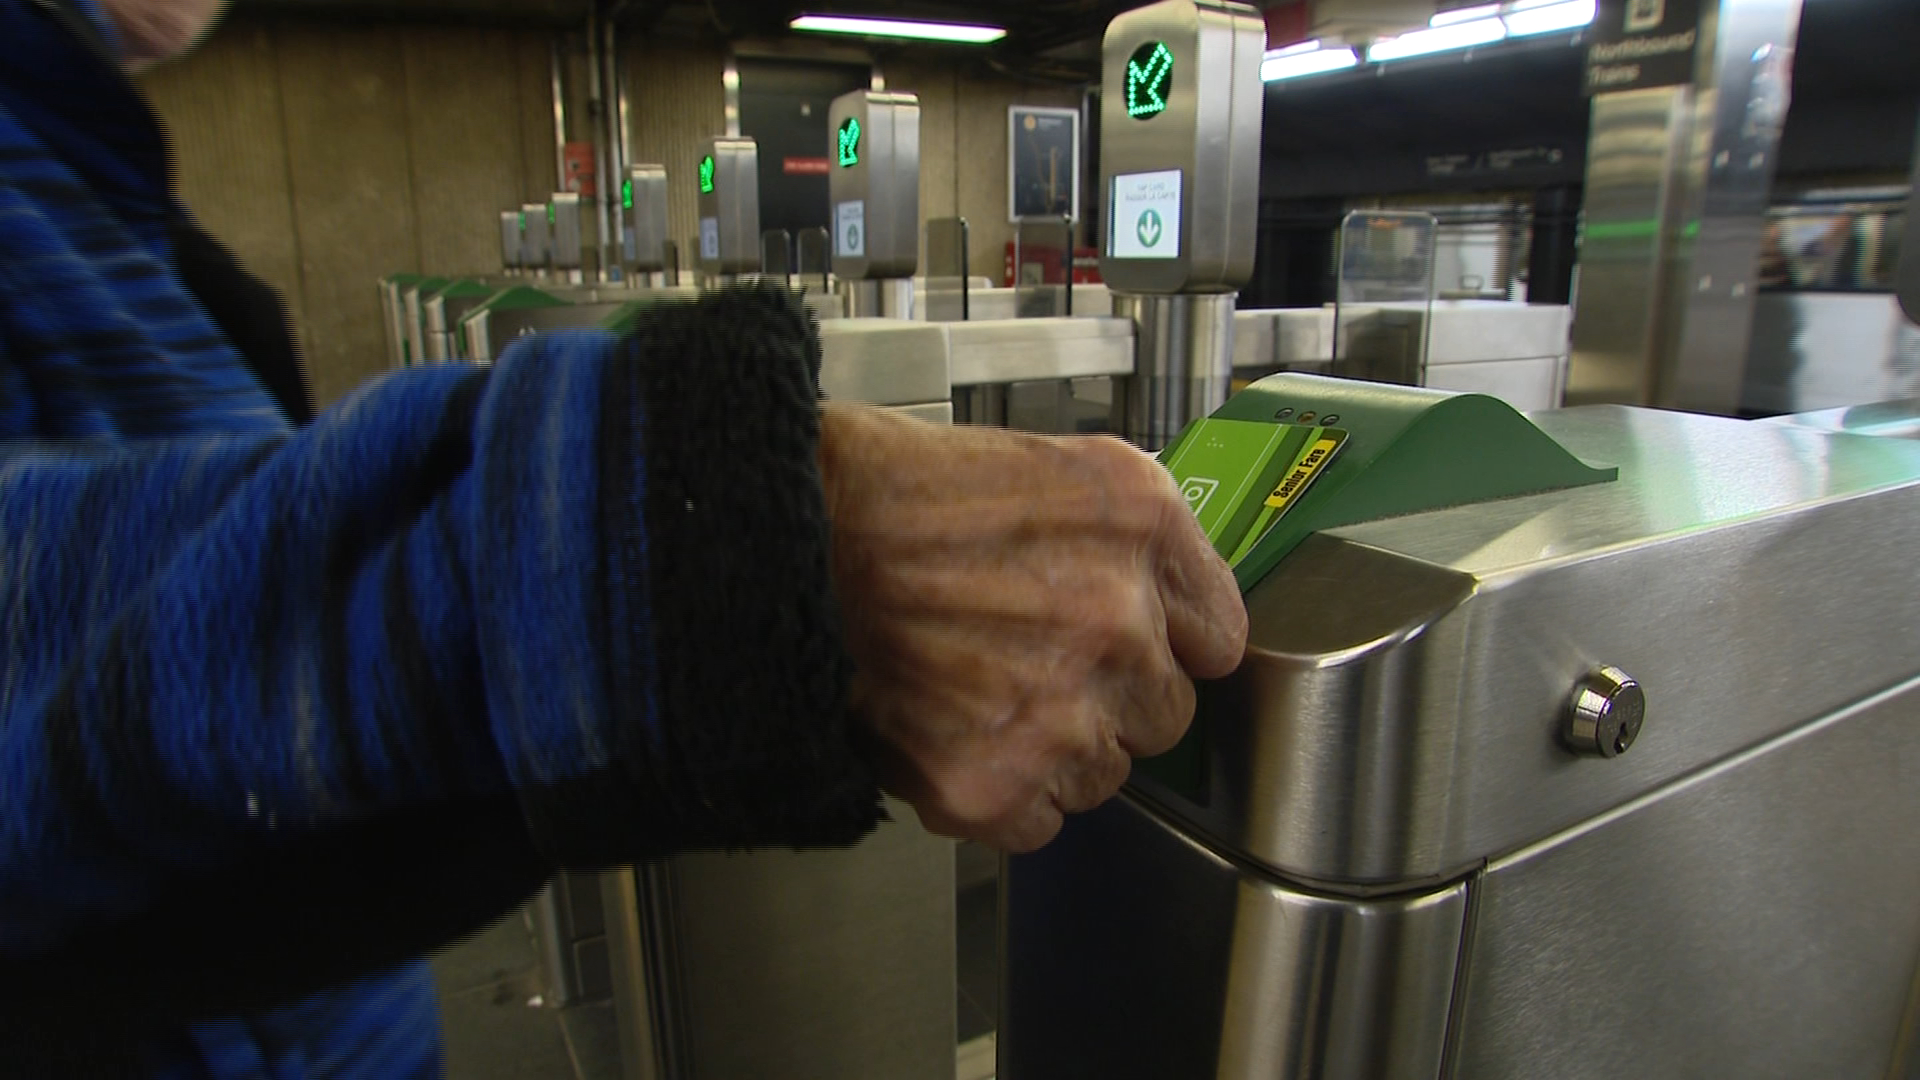 TTC seeks to raise fares by 10 cents in 2020 budget proposal